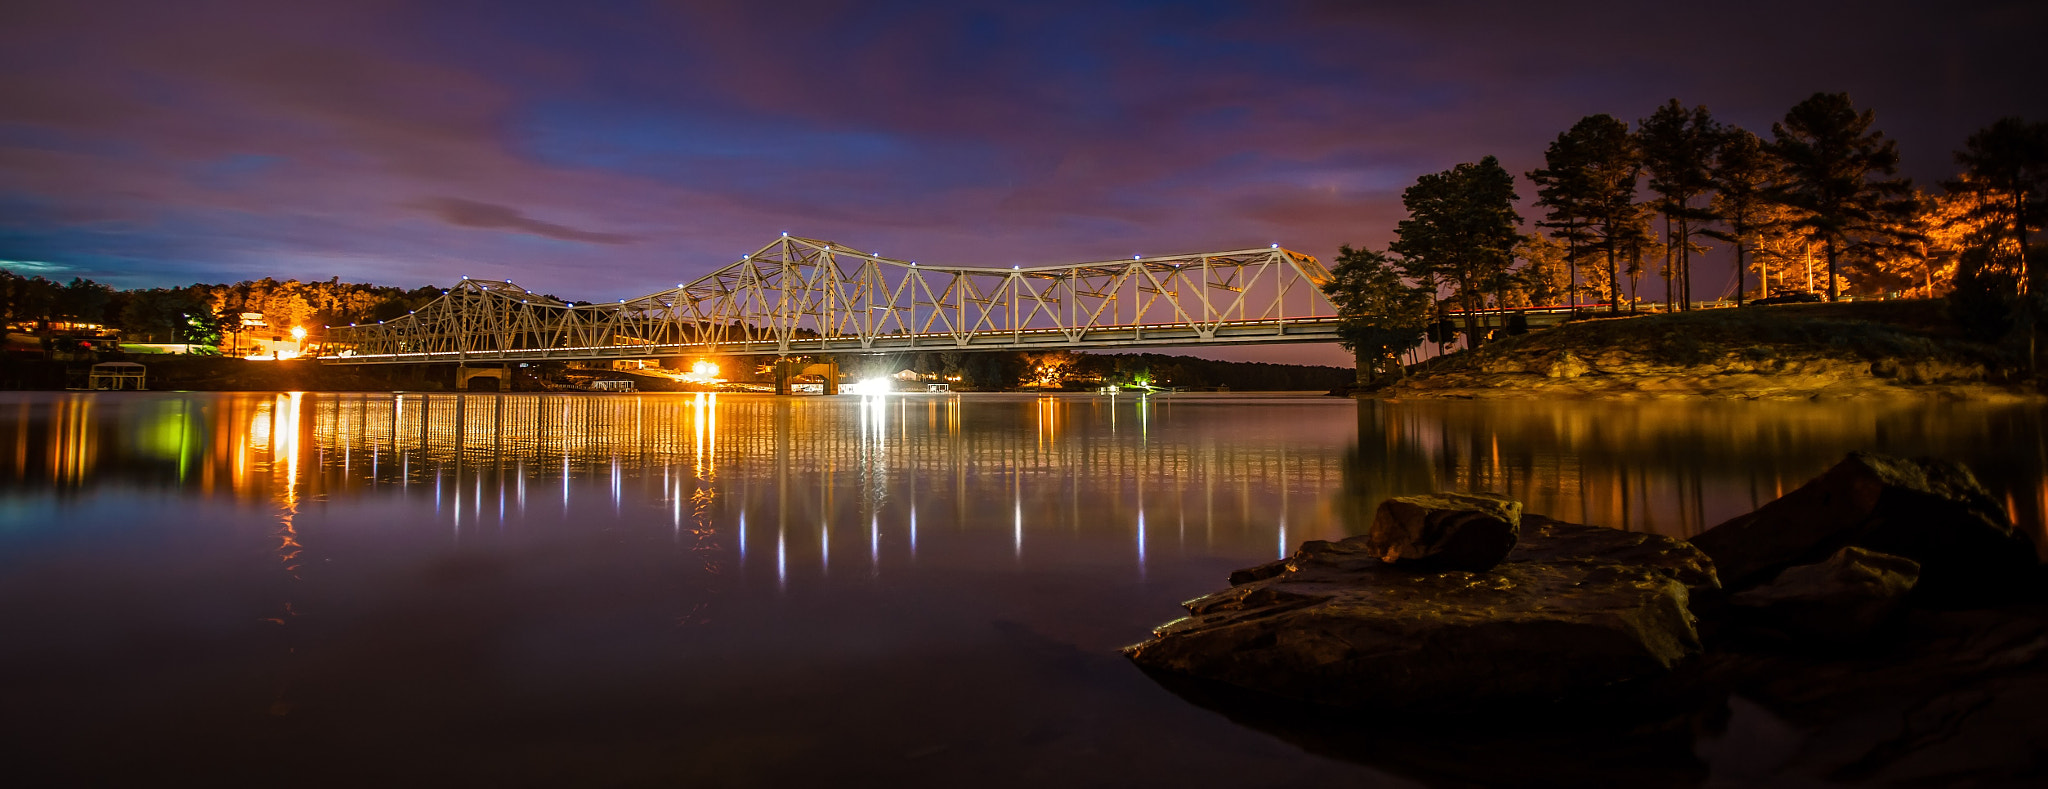 Photograph Duncan Bridge by Kevin Beasley on 500px